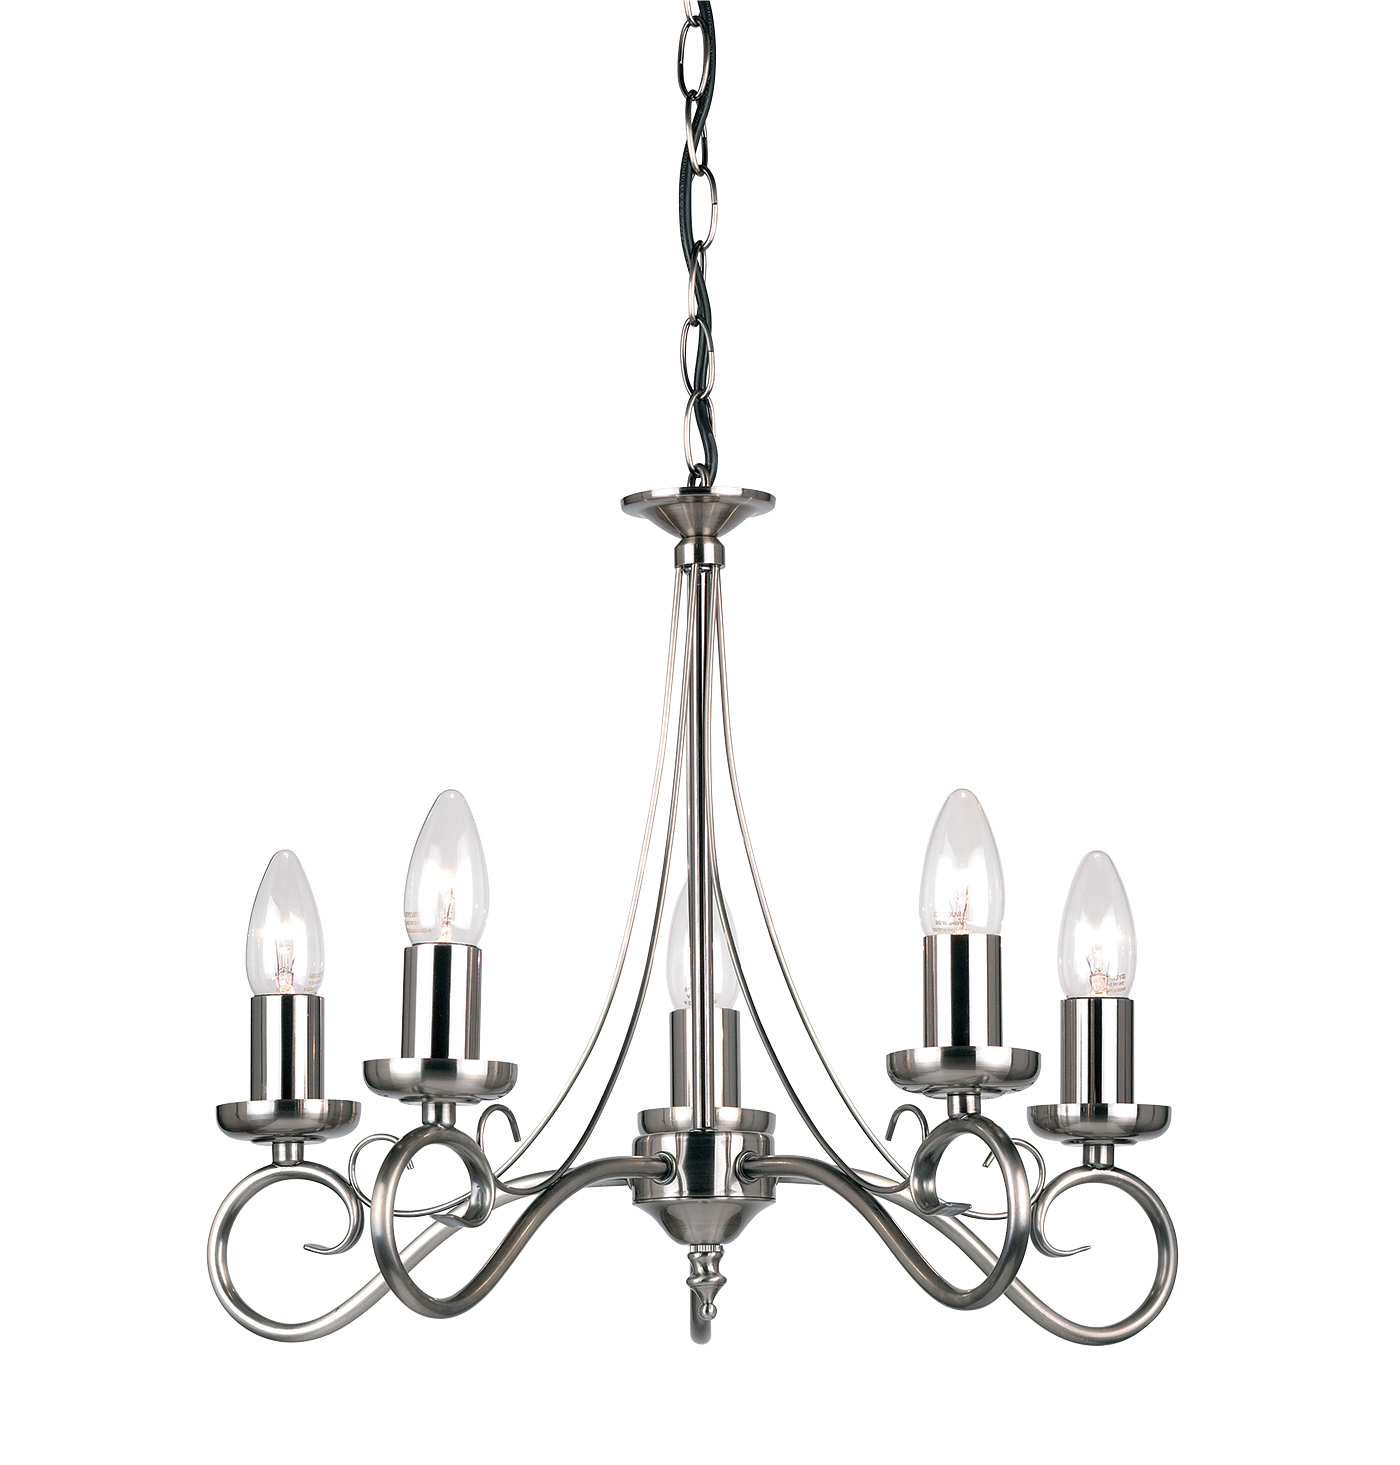 Endon Trafford chandelier 5x 60W Antique silver effect